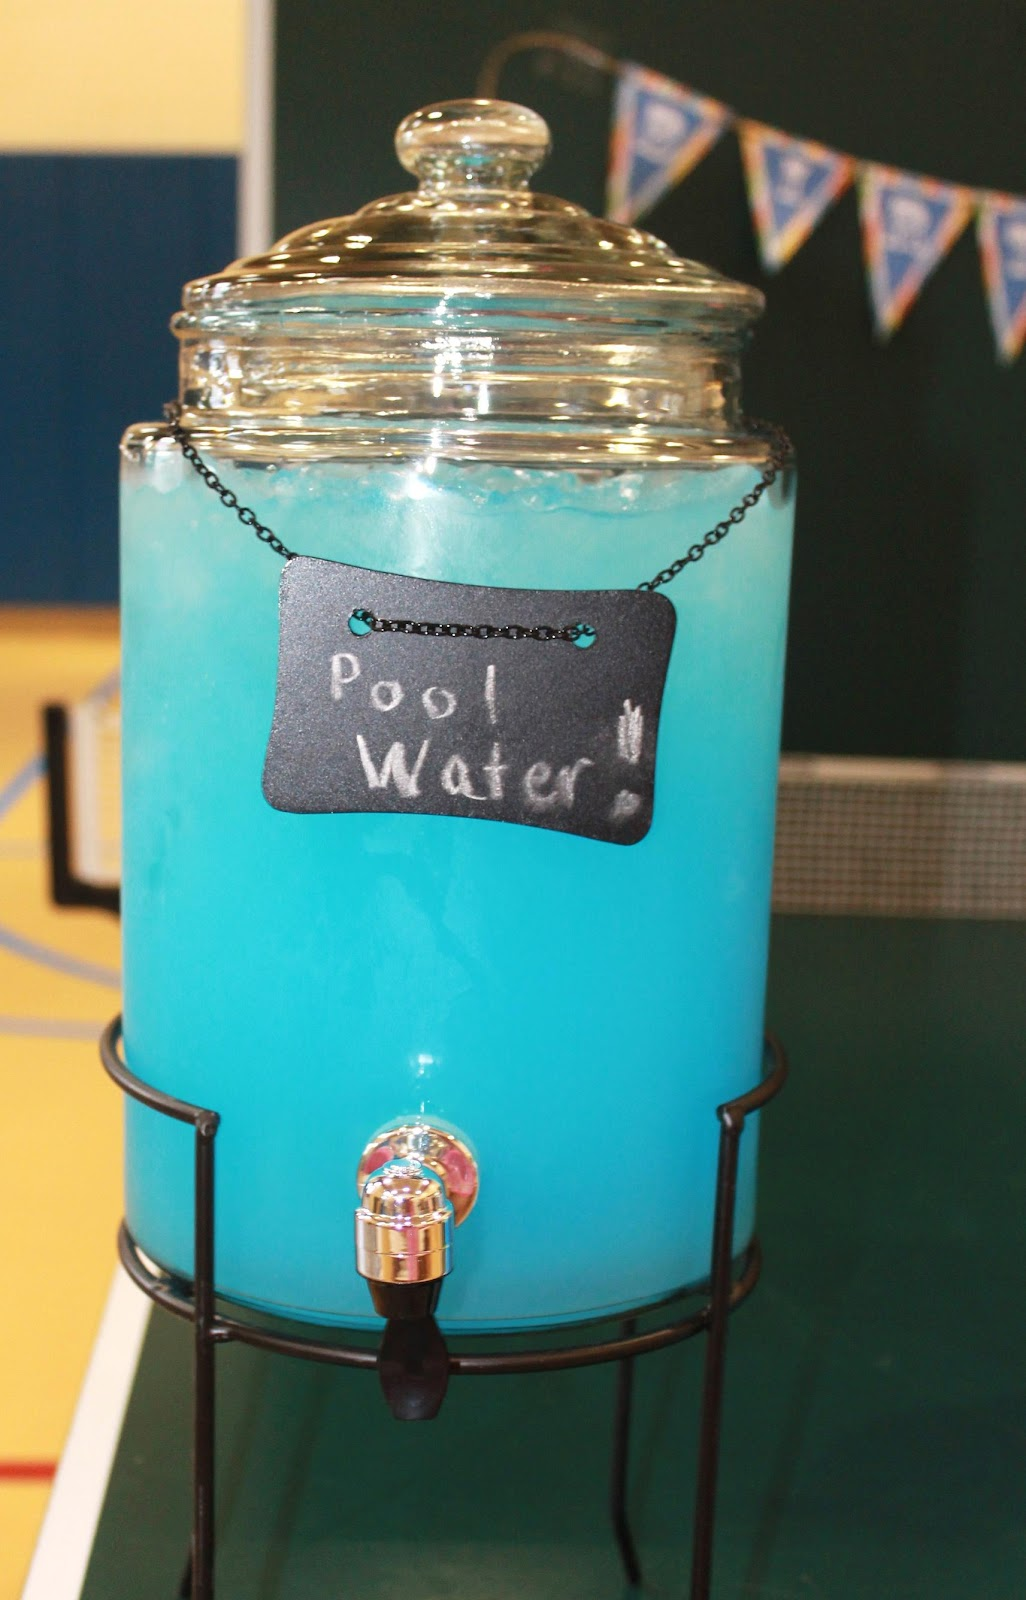 Maryland pink and green birthday pool party How to make swimming pool water drinkable